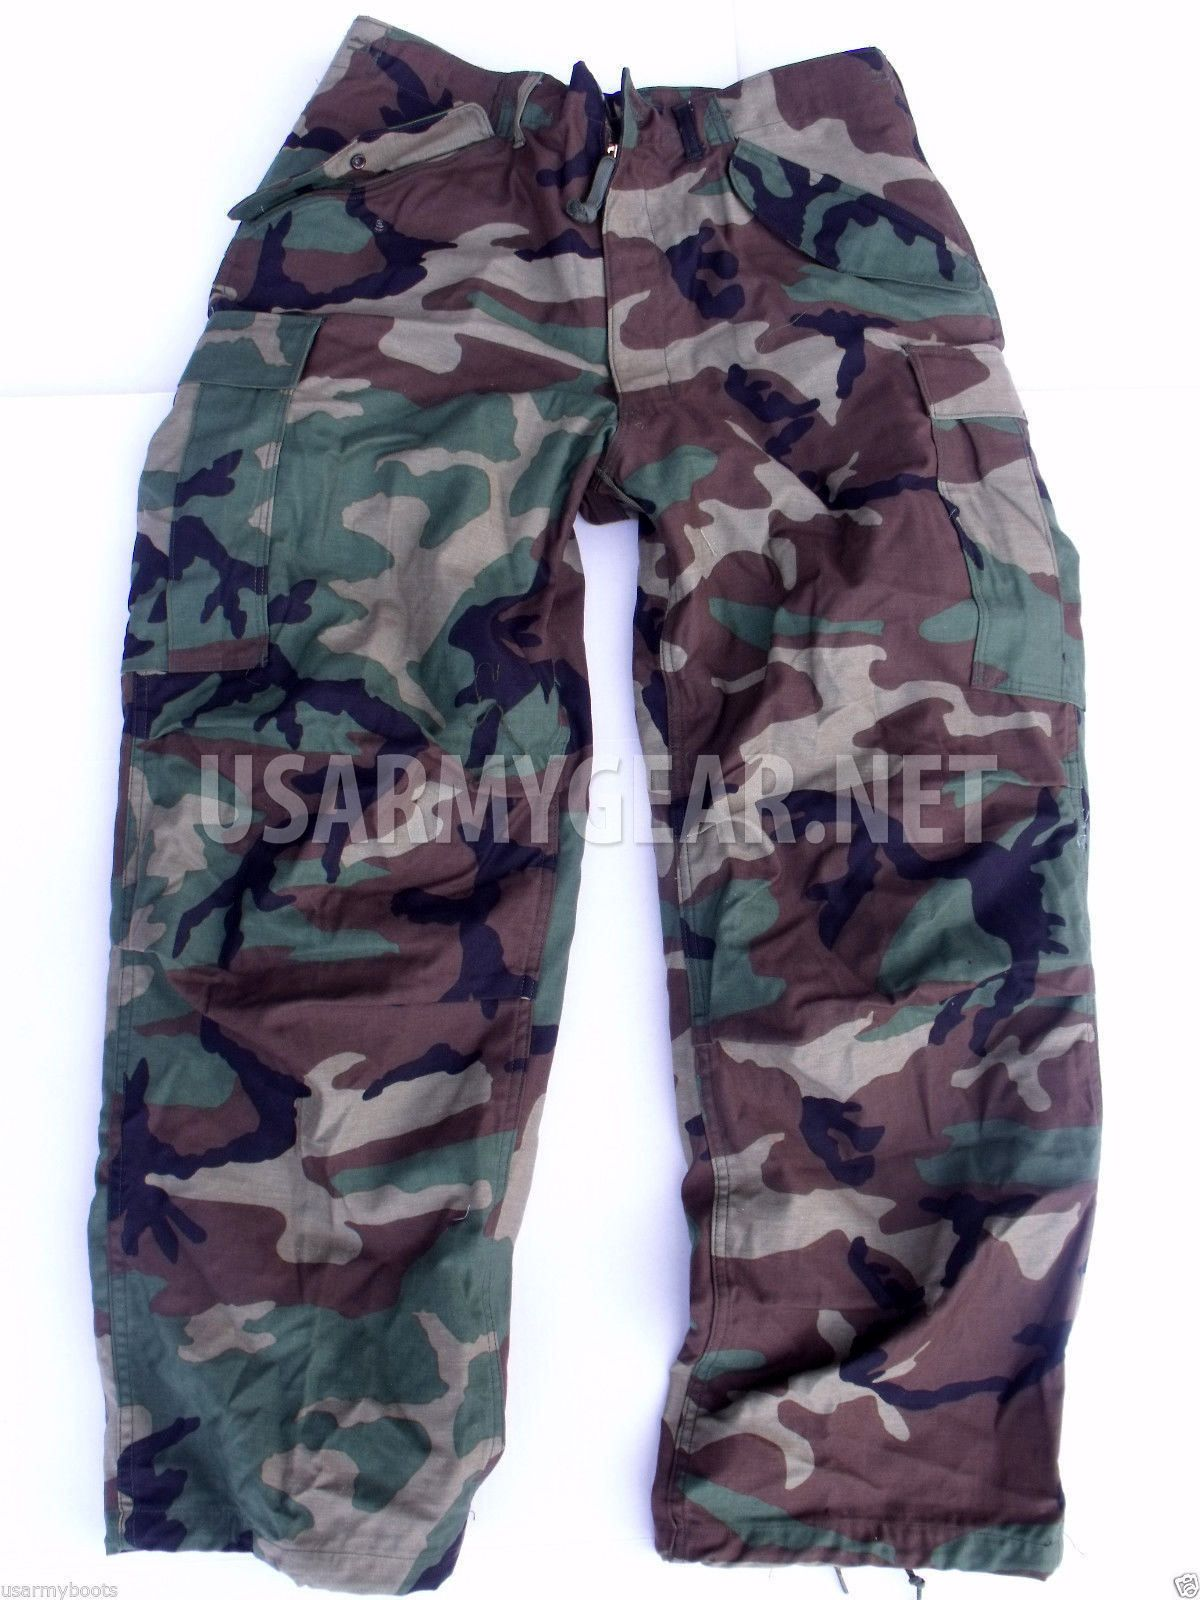 54f01c615a US Army Military Woodland Camouflage M65 BDU Cargo Field Pants Trousers +  Liner | US Army Gear